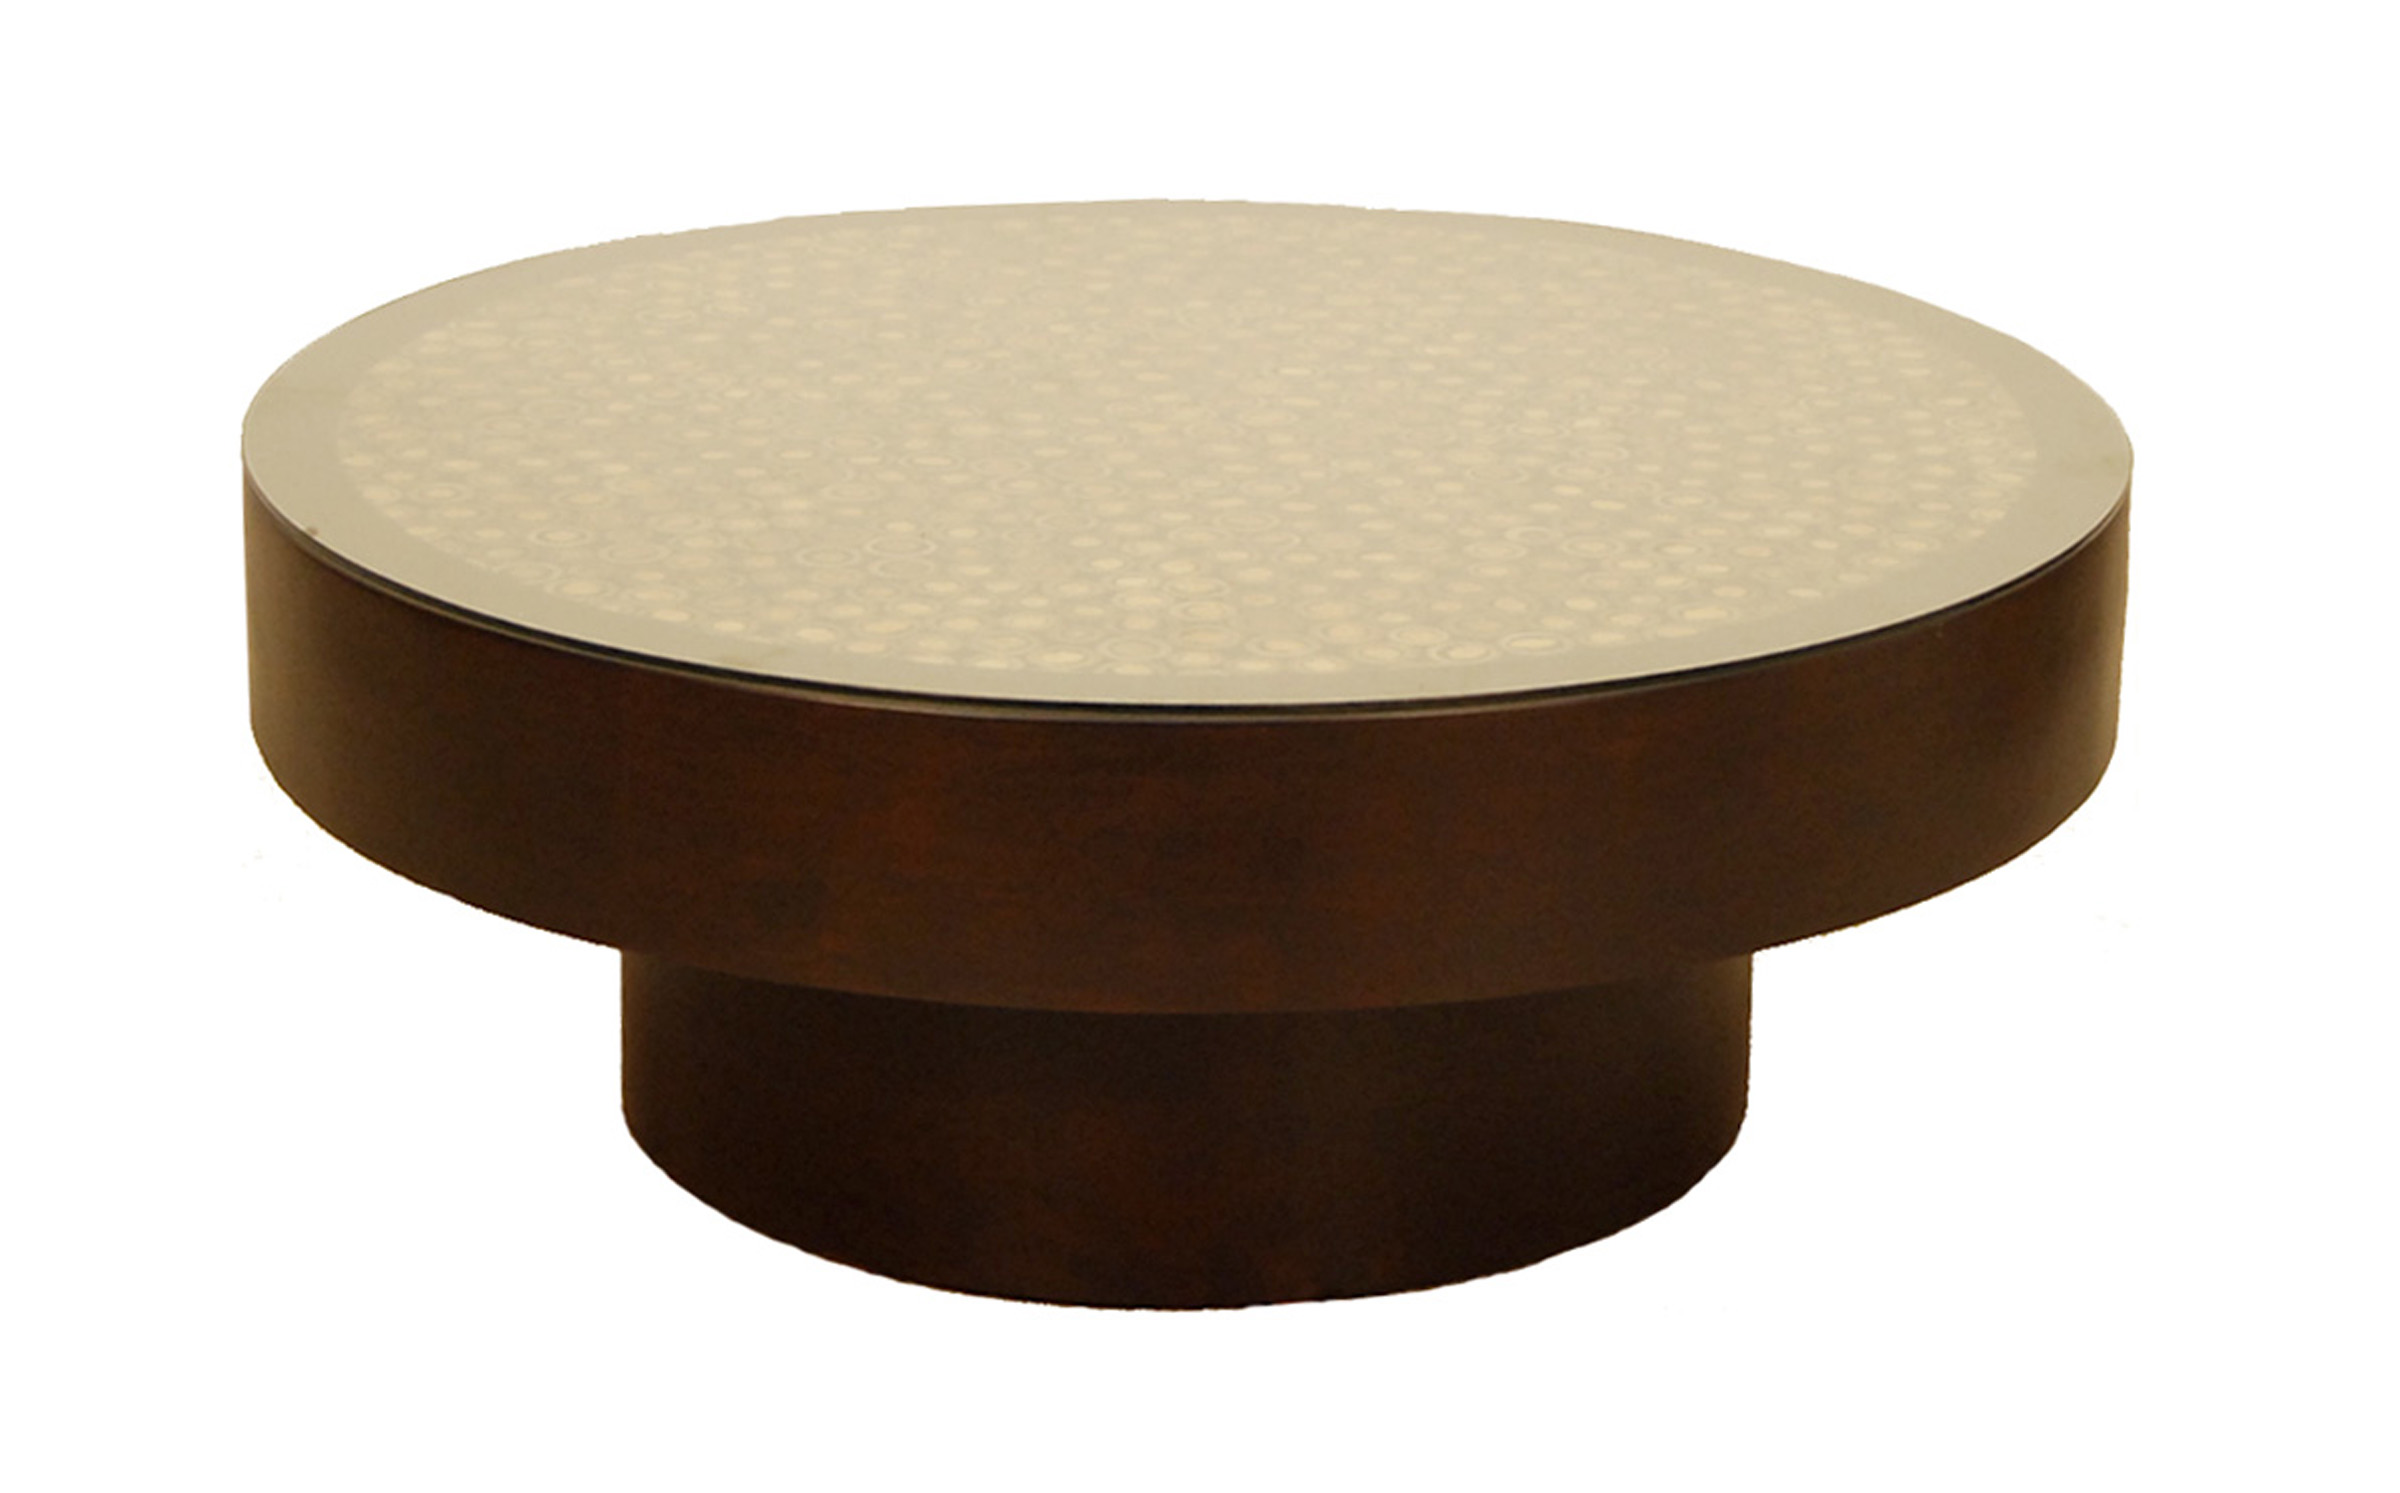 Fascinating round wood coffee table for home coffee bar What to put on a round coffee table